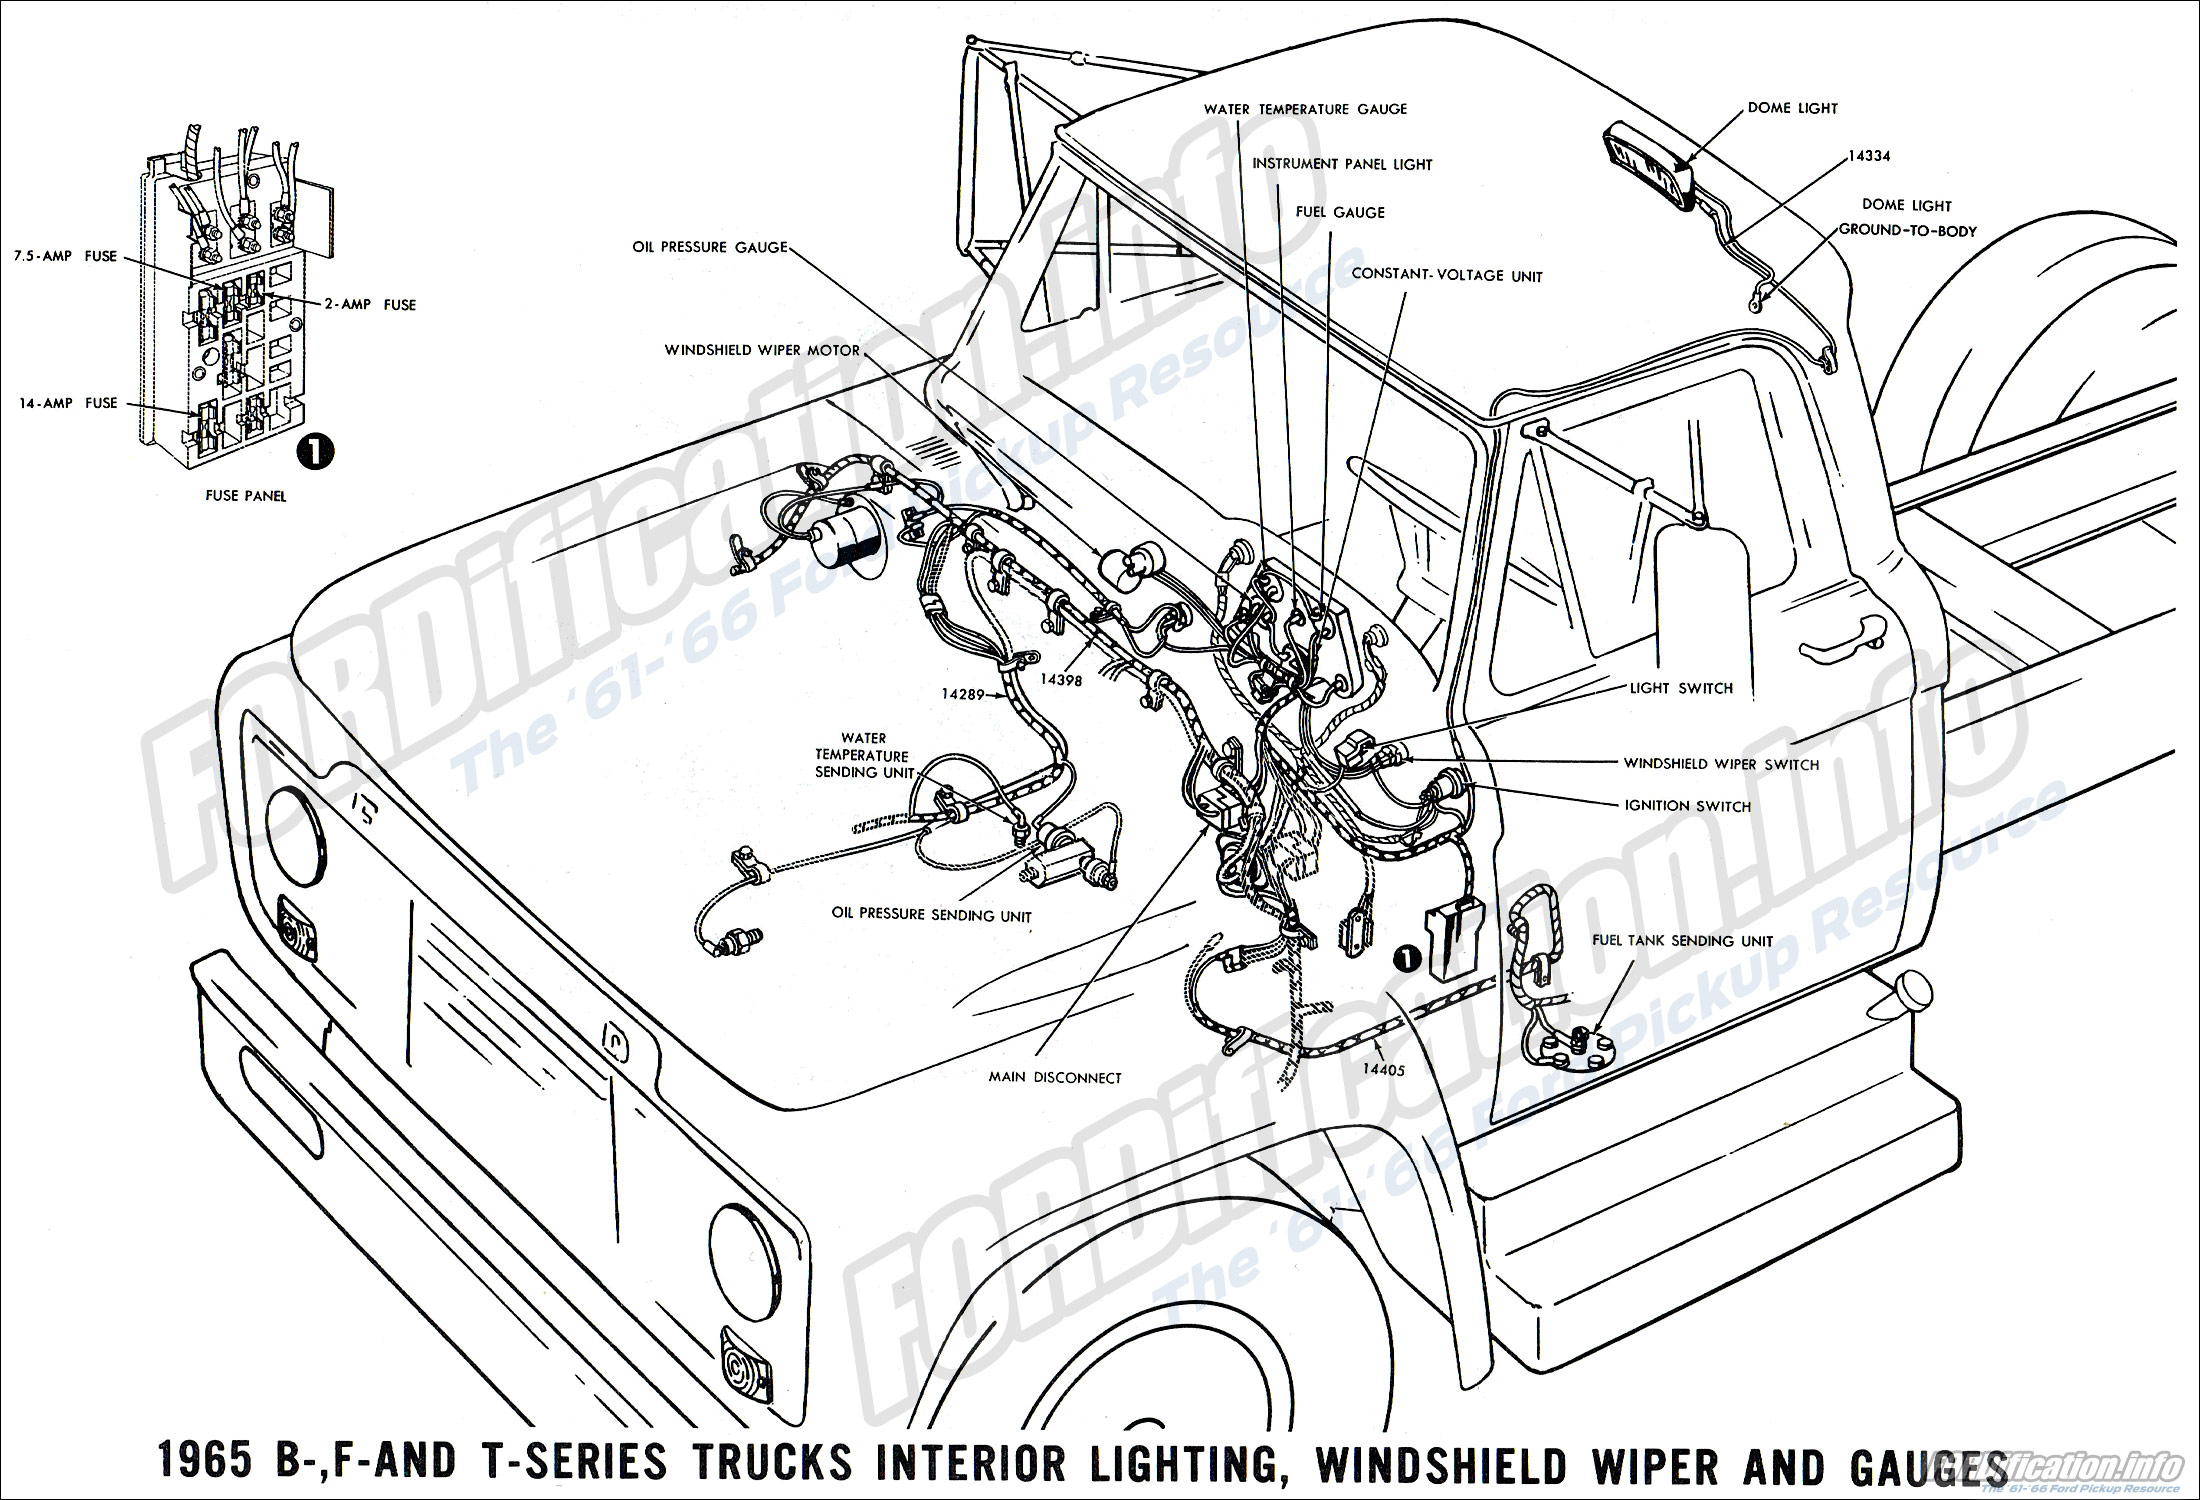 1965 ford pickup wiring diagram wiring diagram todays1965 ford truck wiring diagrams fordification info the \u002761 \u002766 1952 ford pickup wiring